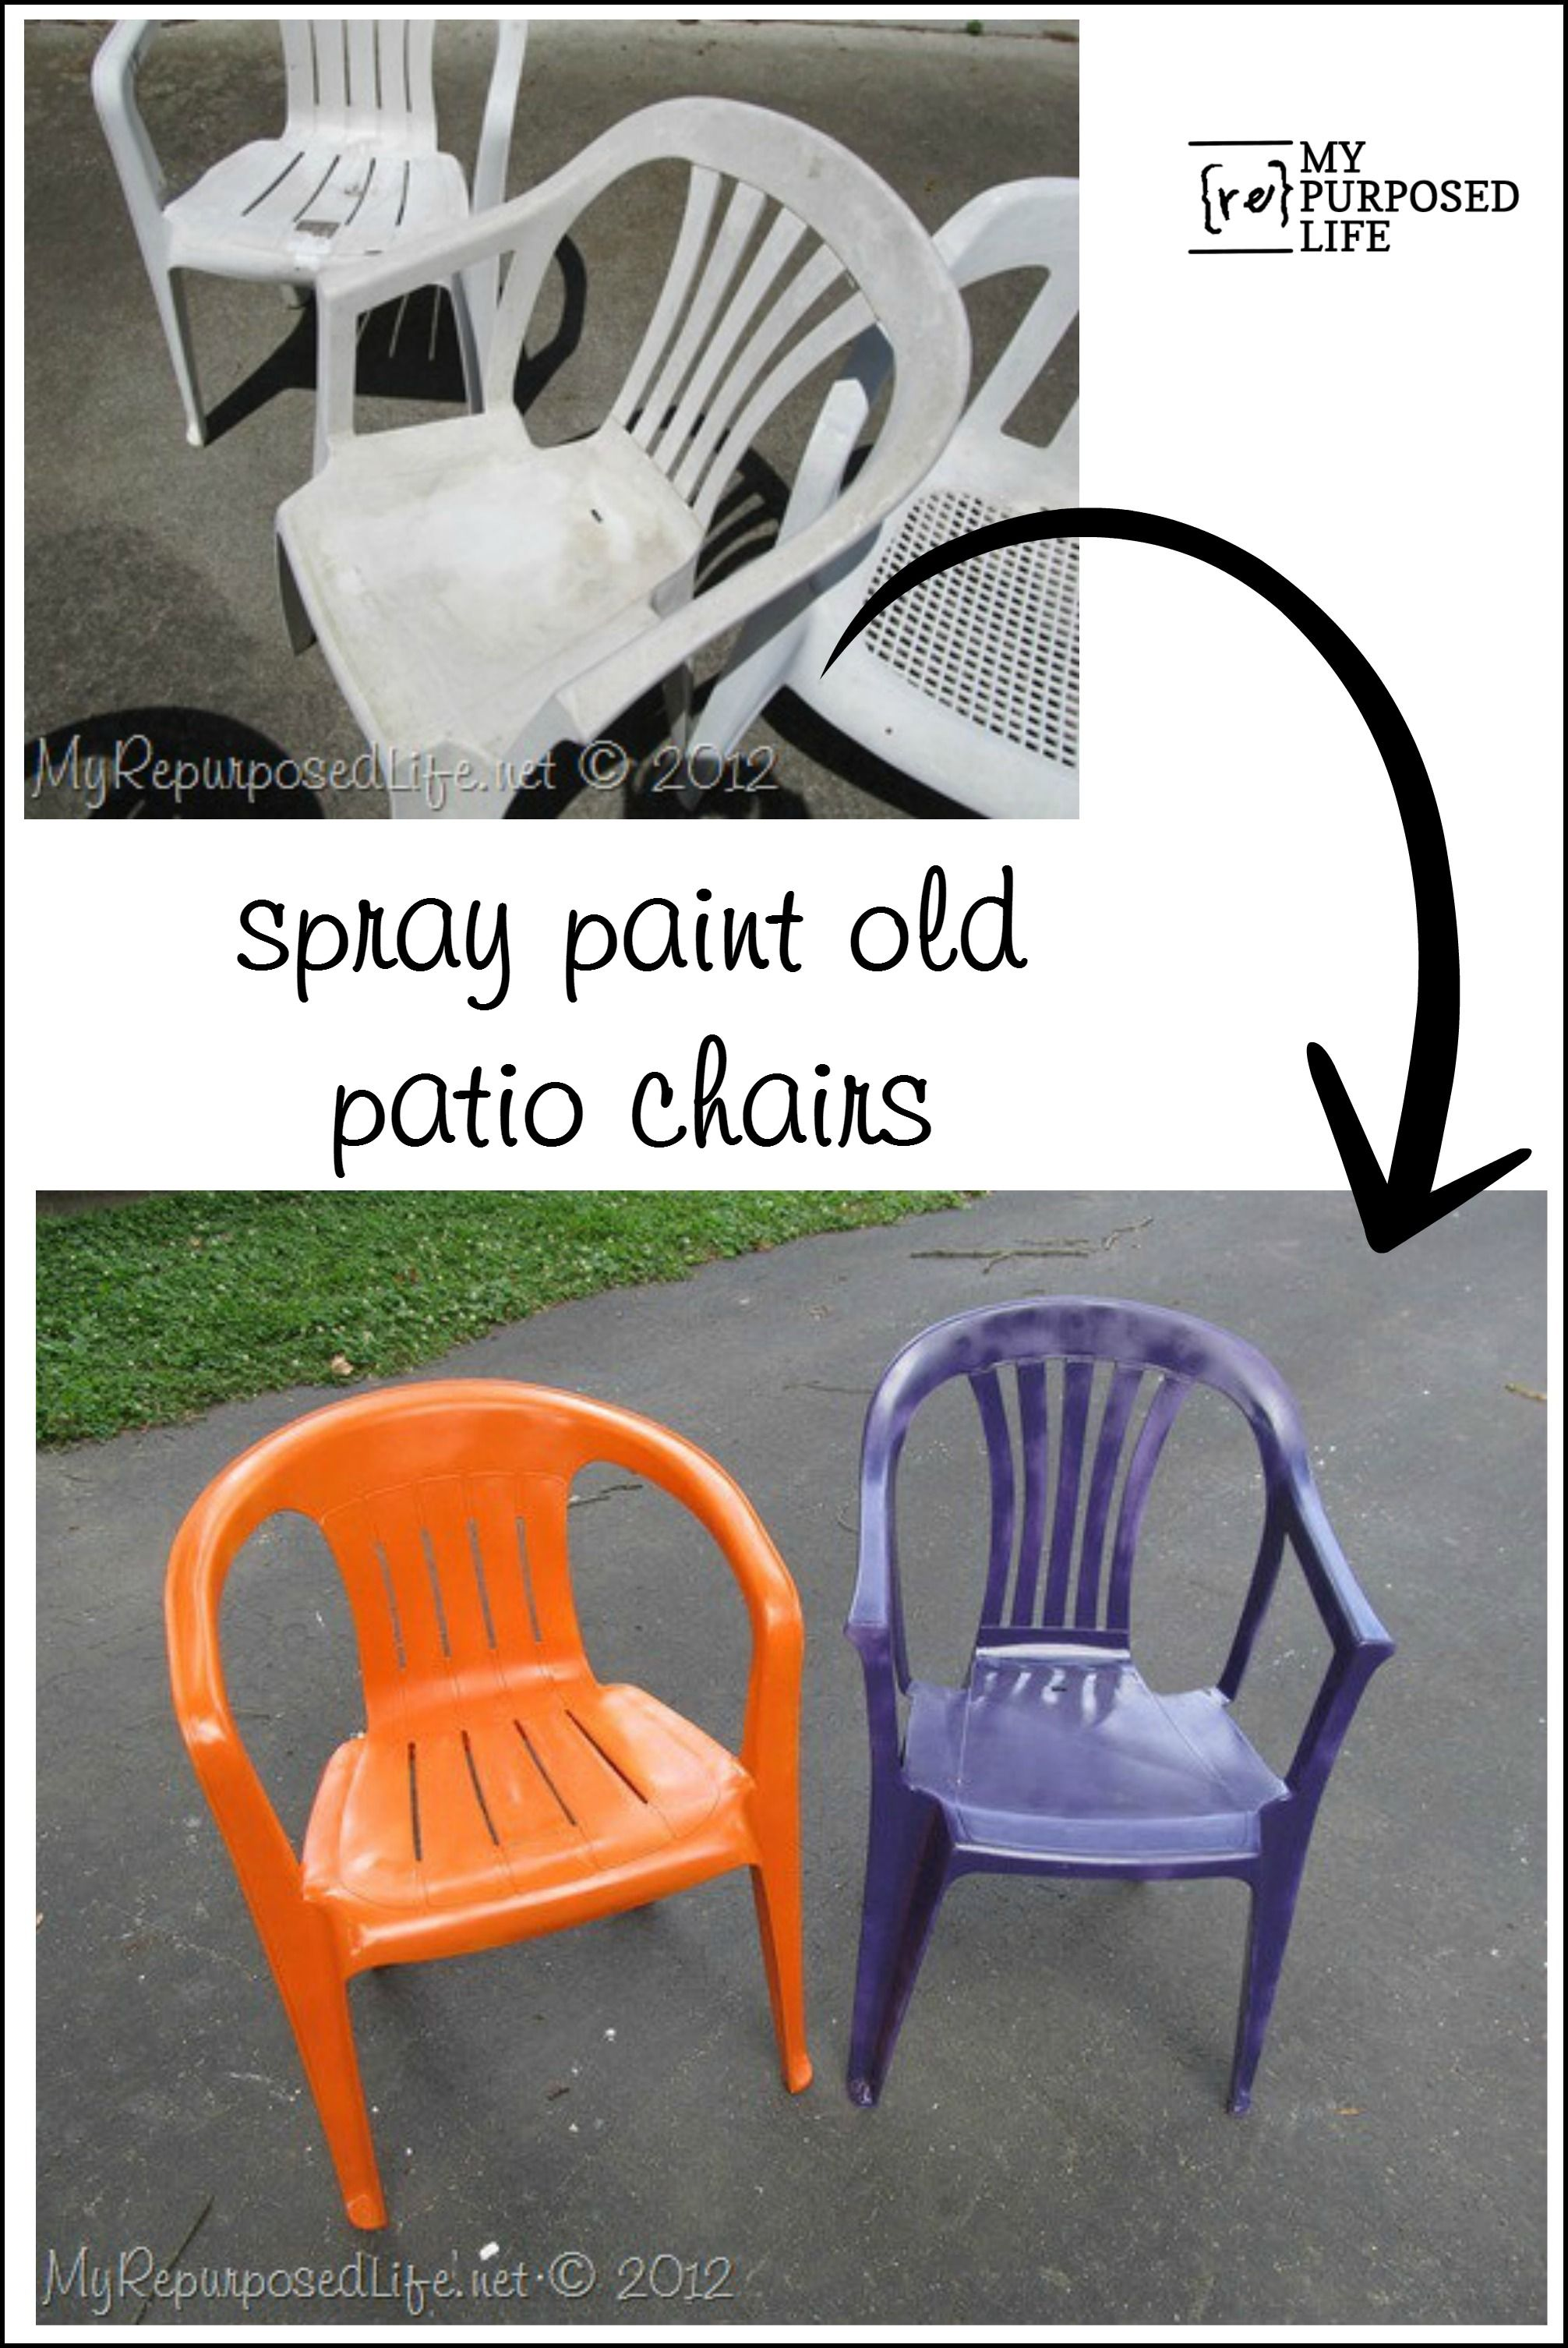 How To Spray Paint Plastic Chairs You Know Those Old White Chairs You Have They Are Pitted And